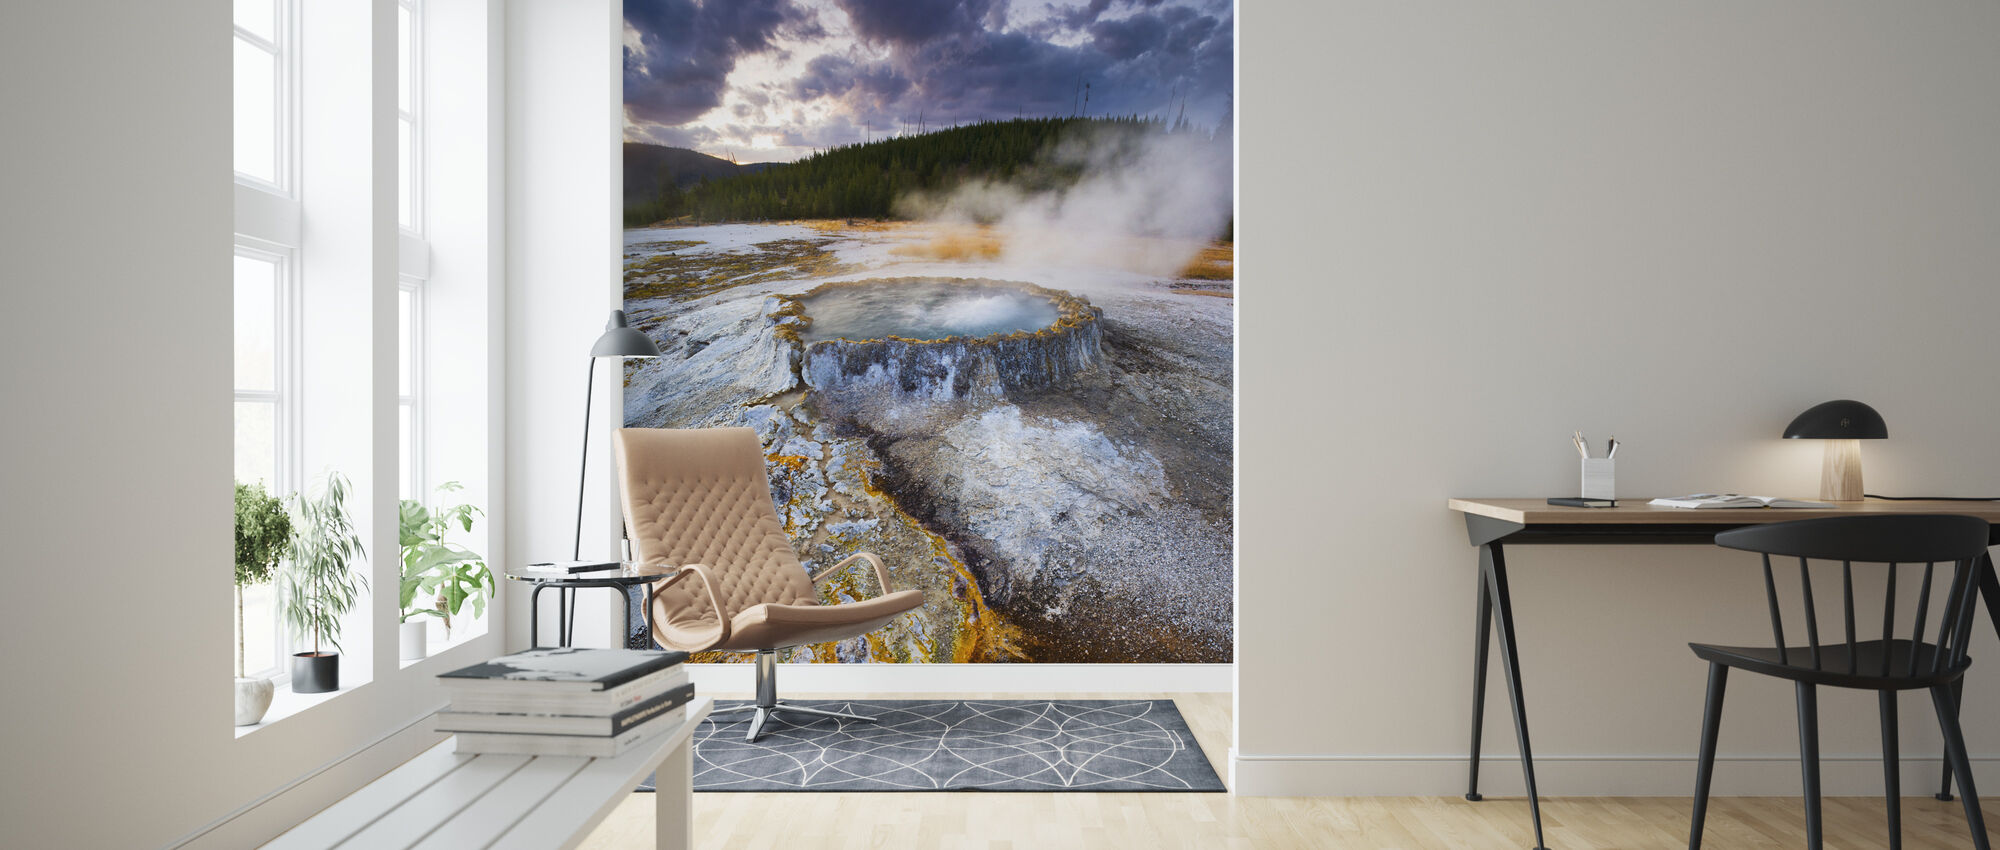 Hotspring, Yellowstone National Park - Wallpaper - Living Room